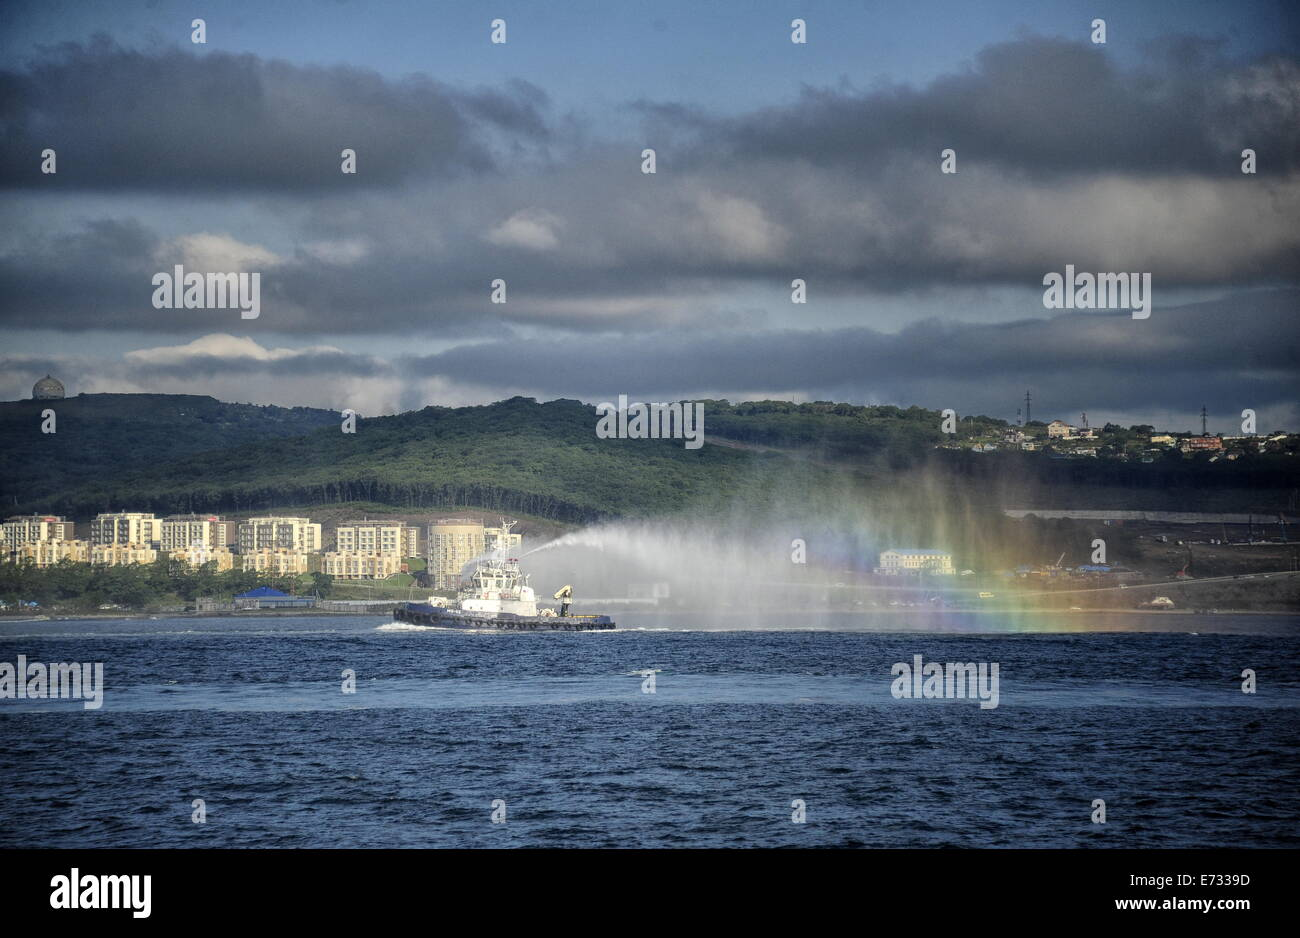 Primorye Territory, Russia. 5th Sep, 2014. A PE-65 escort tug of the Russian Black Sea Fleet takes part in the naval - Stock Image